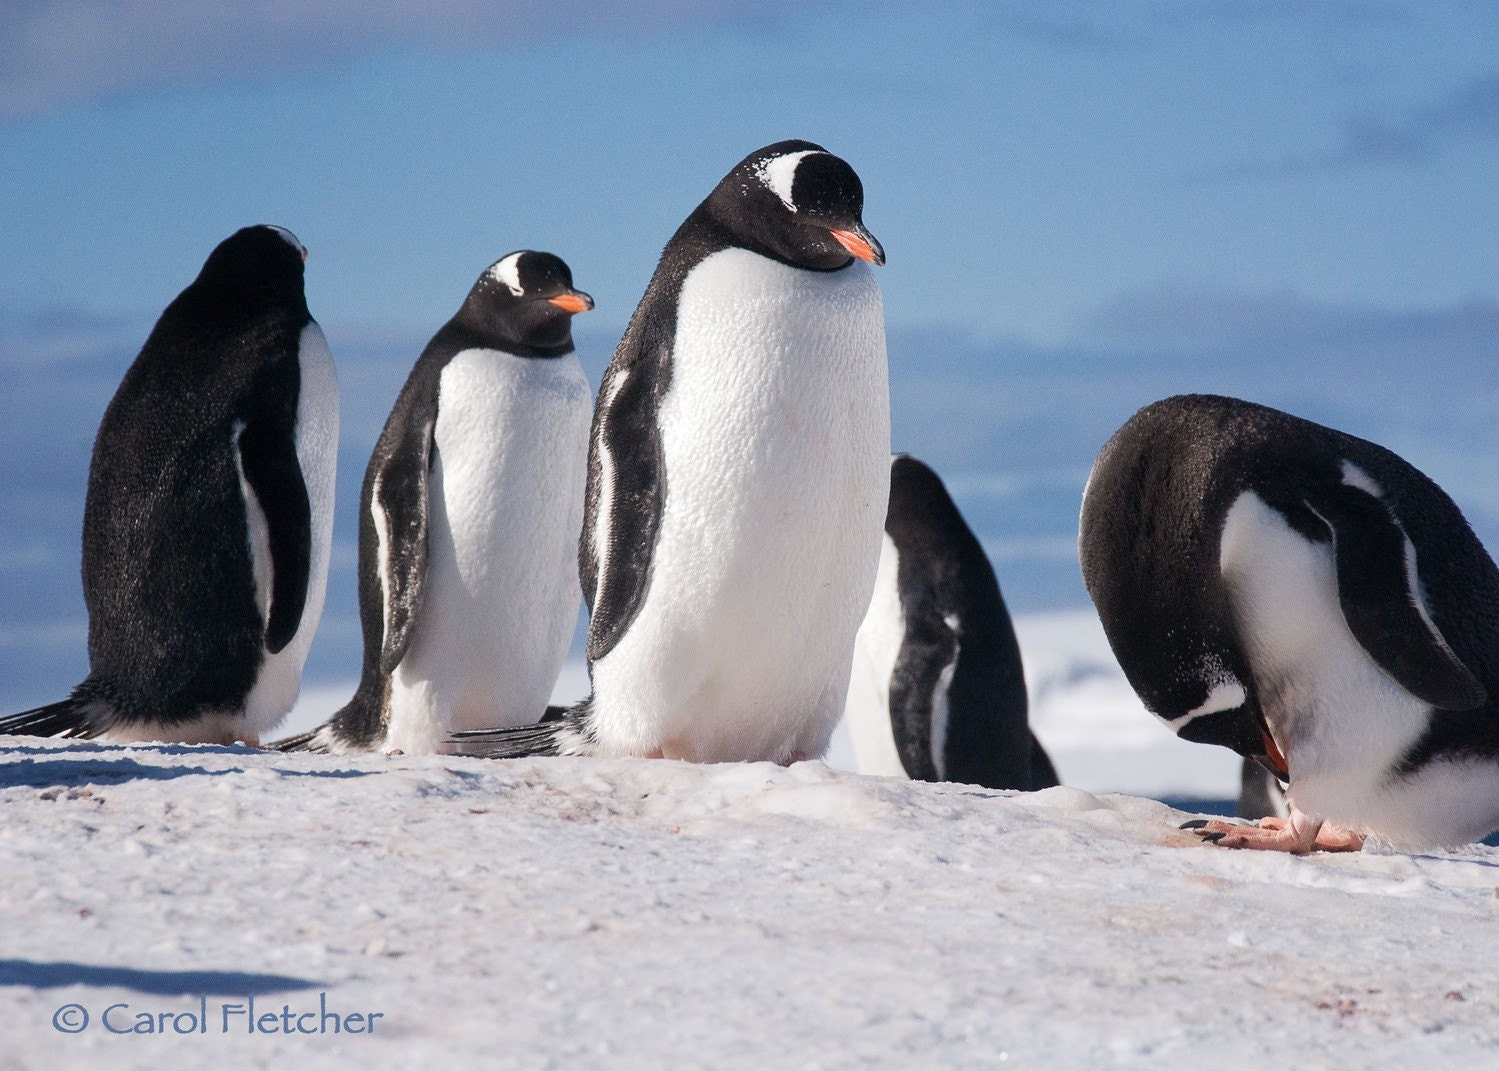 Antarctica Five Penguins - Fine Art Photography Print - 5x7 - Blue - Bird - Gentoo - Cold - Winter - snow - ice - CarolFletcher